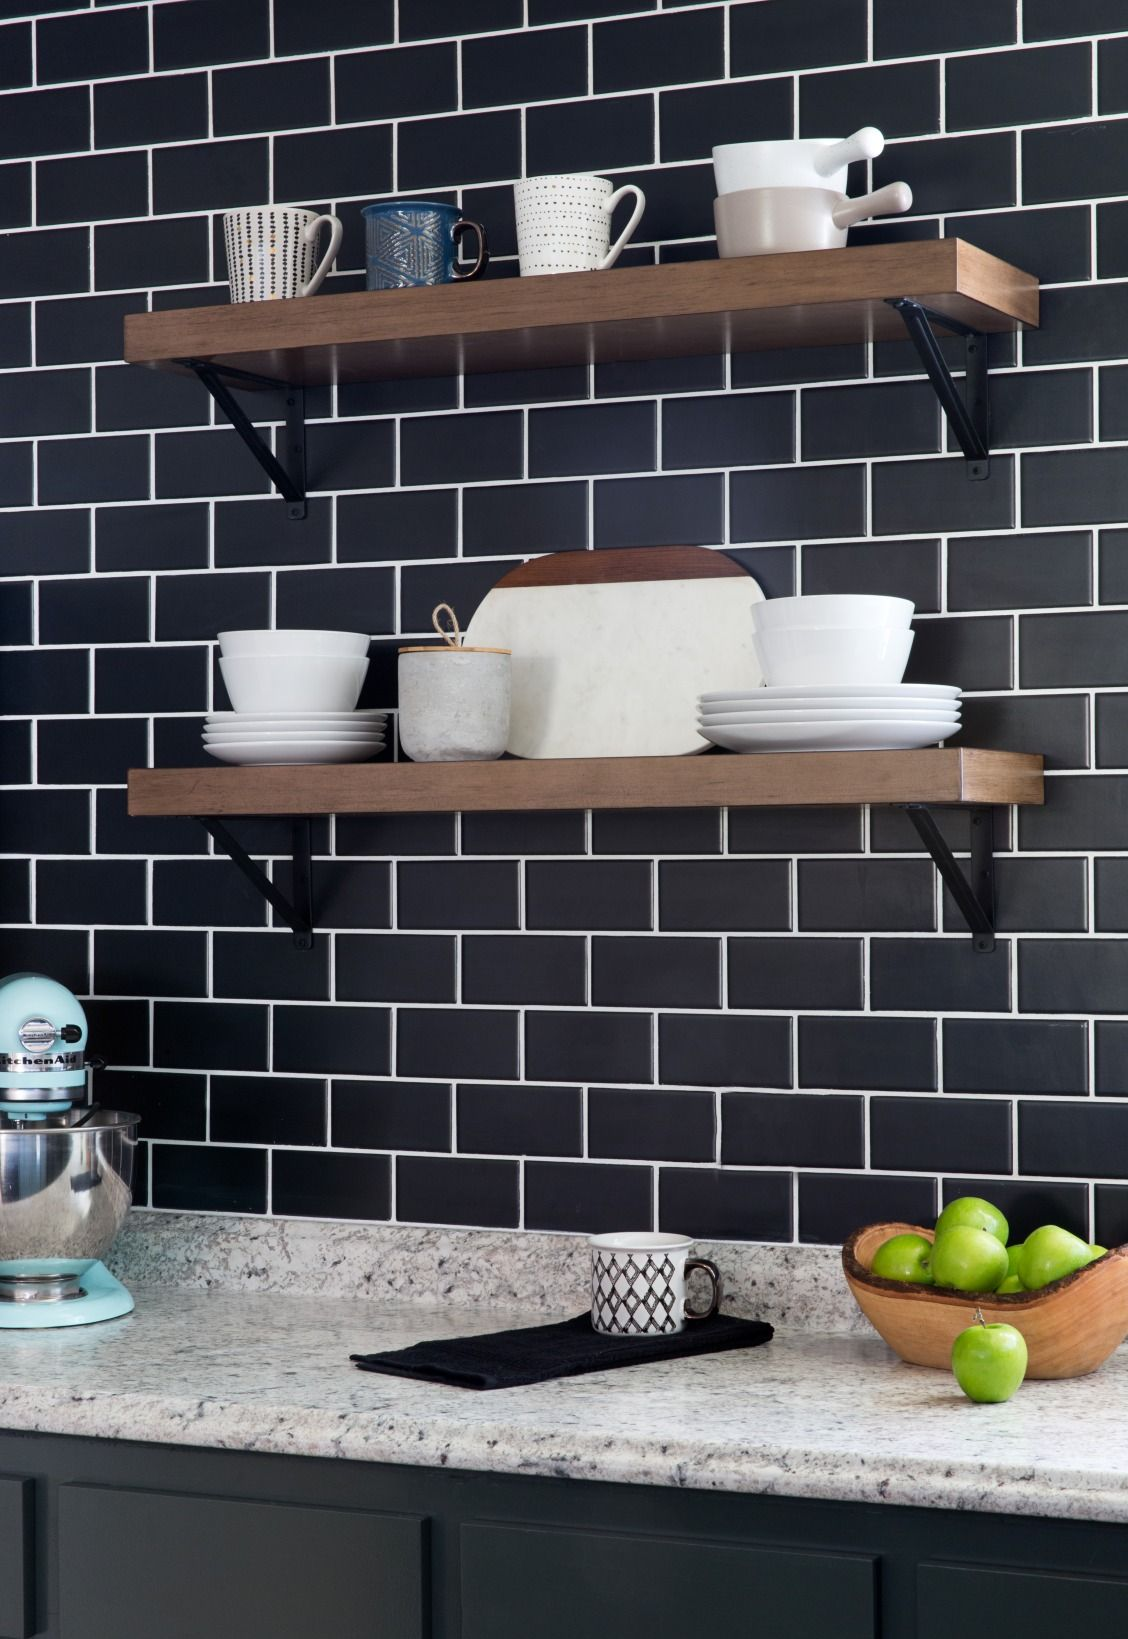 Diy Projects And Ideas Kitchen Decor Black Tiles Kitchen Black Subway Tiles